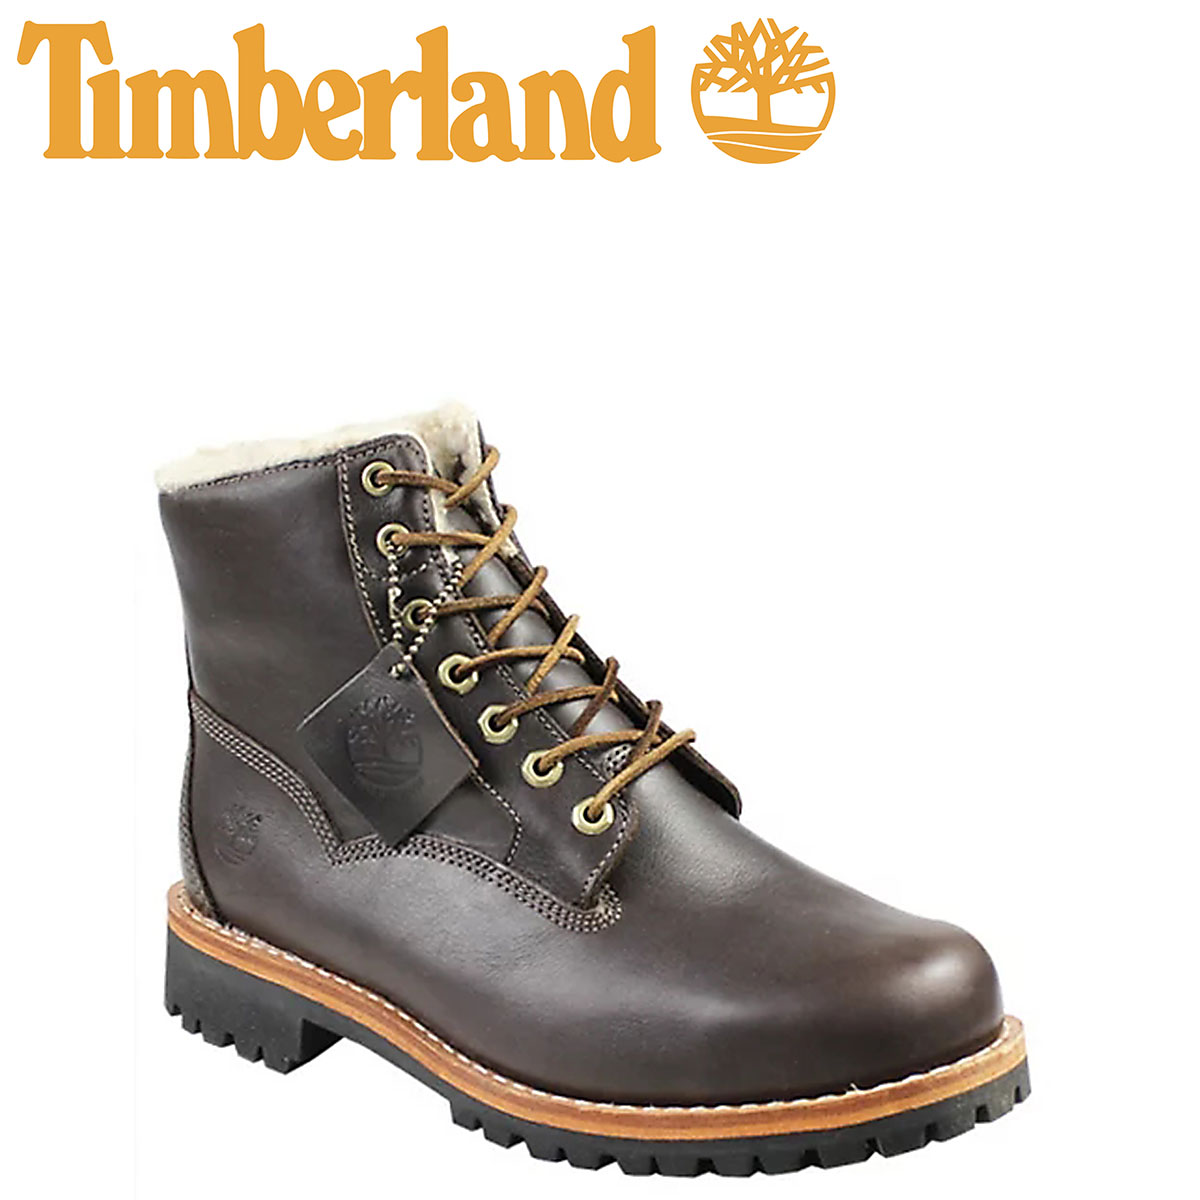 60071cf176e2 Point 2 x Timberland Timberland heritage waterproof bomber boots WATERPROOF  BOMBER BOOTS HERITAGE leather men s work boots waterproof 6555A Brown  11    14 ...